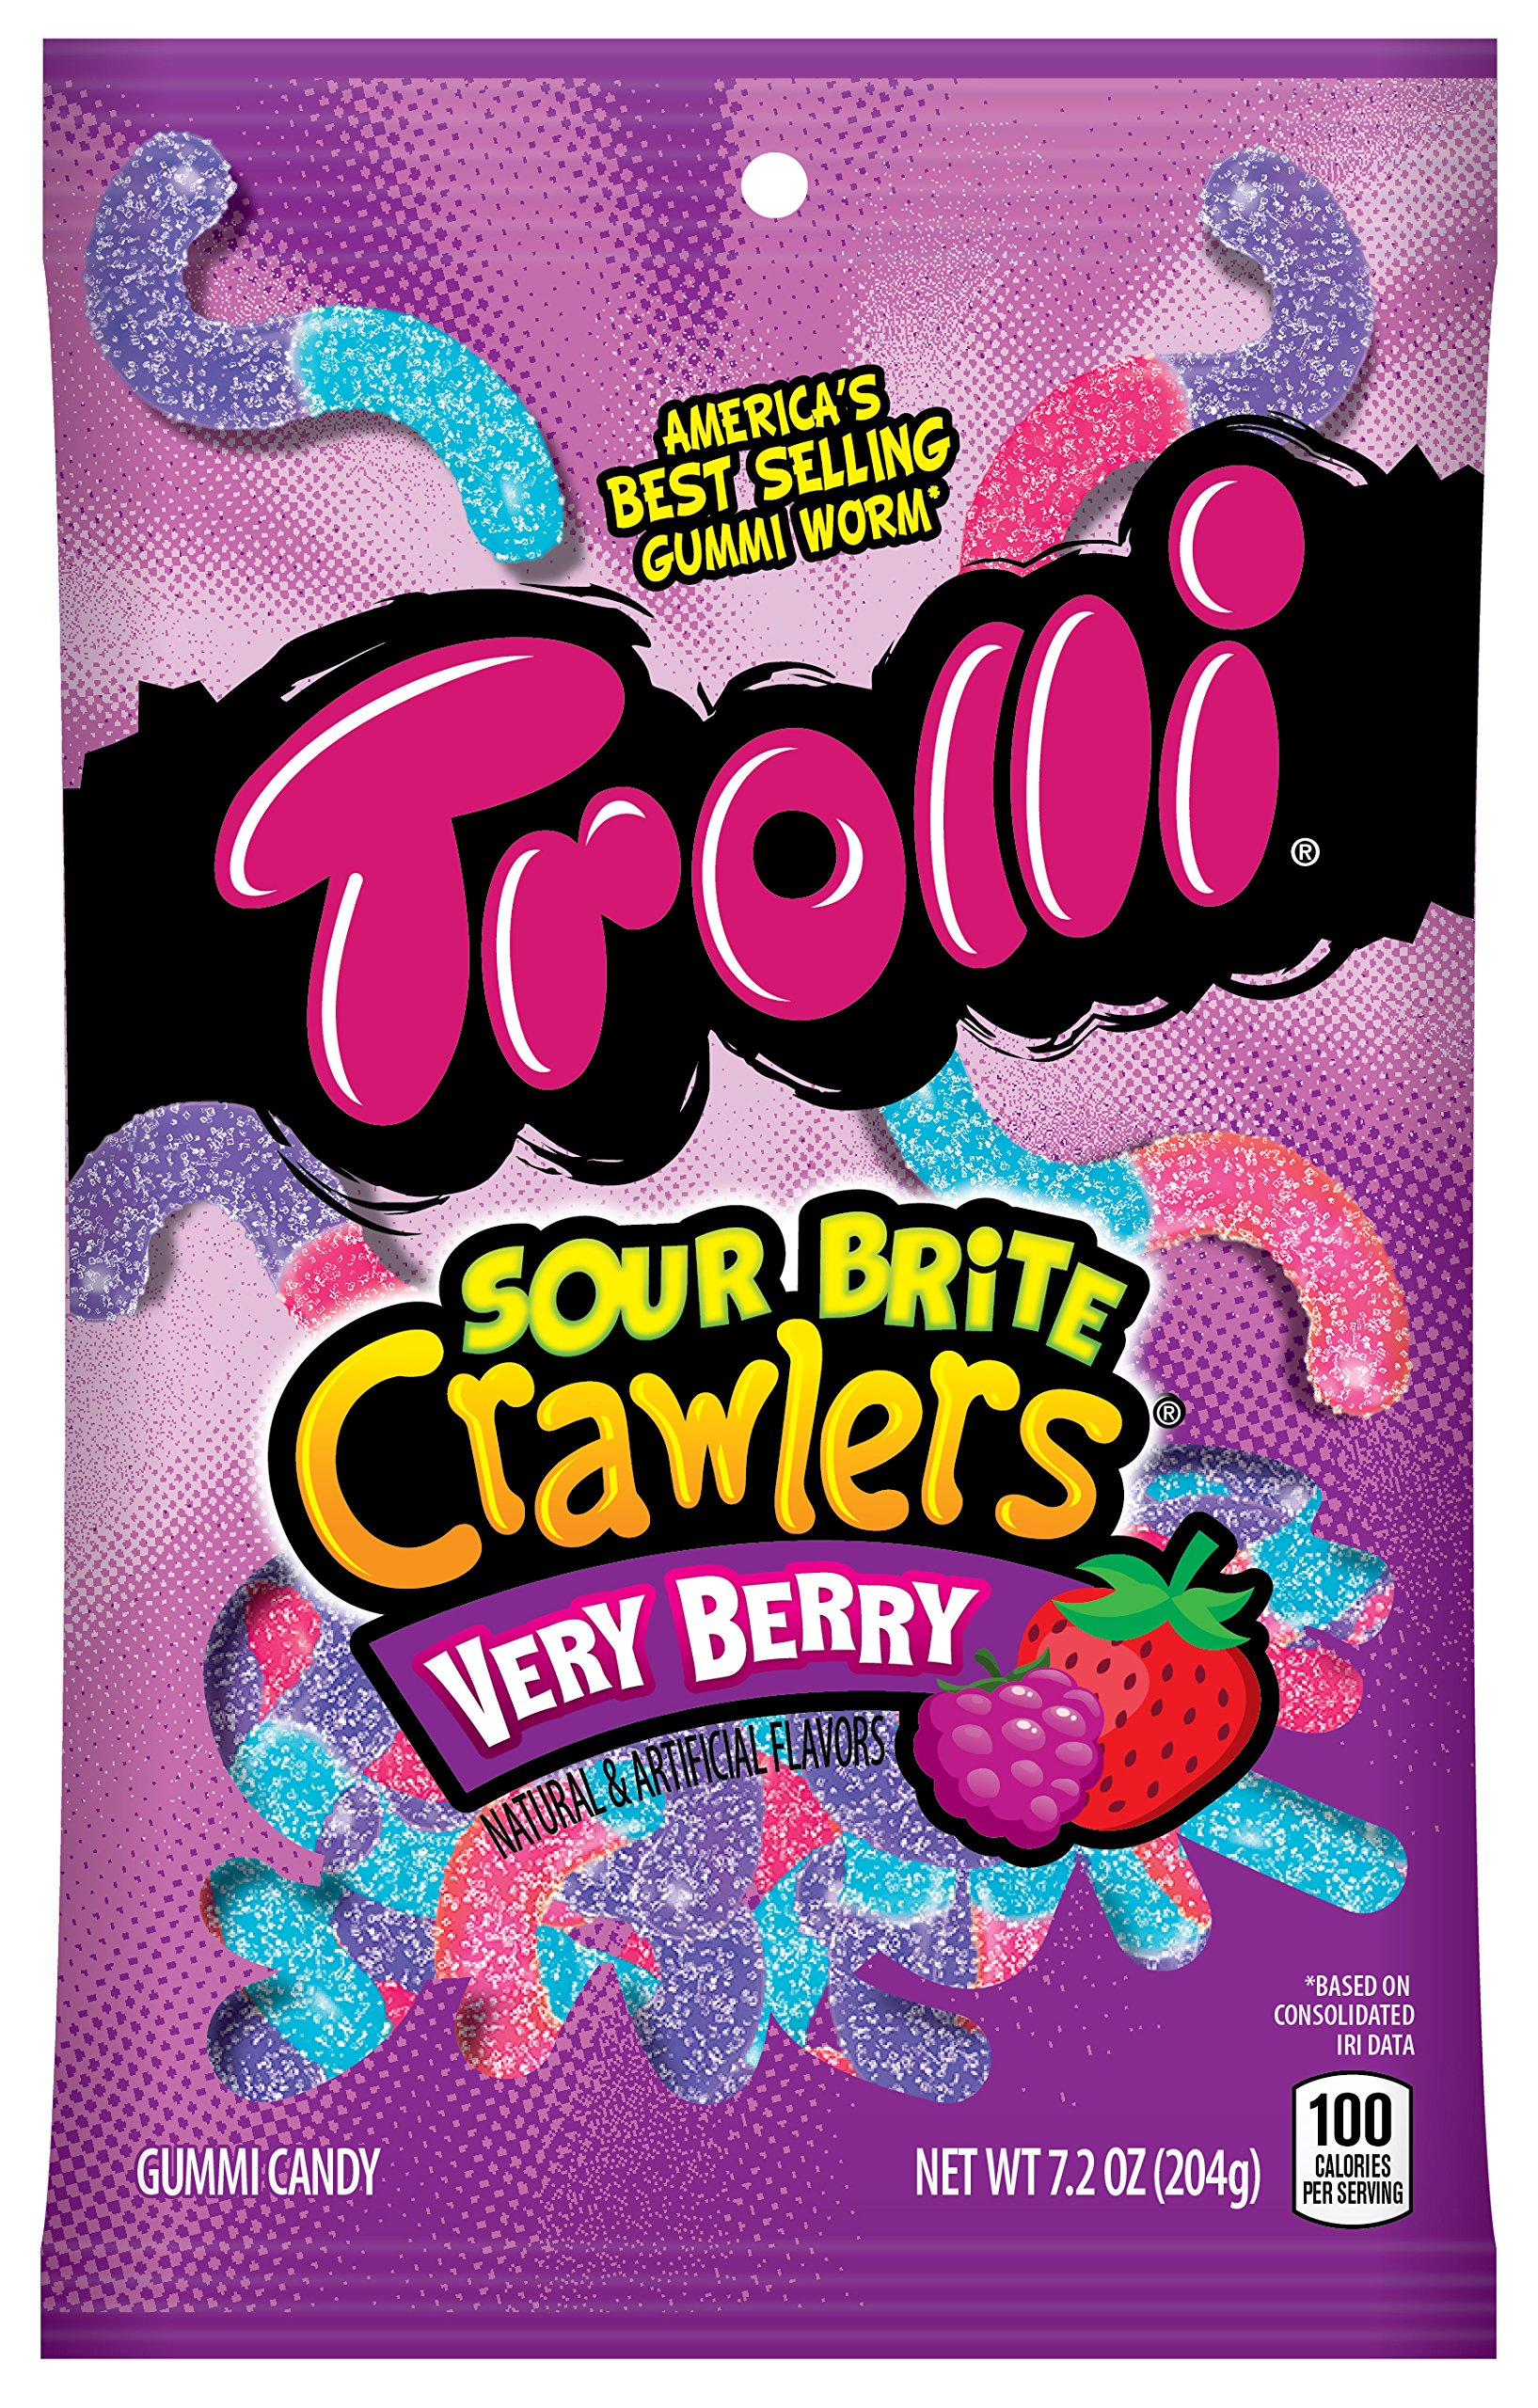 1a995d657dc Amazon.com   Trolli Sour Brite Crawlers Gummy Candy